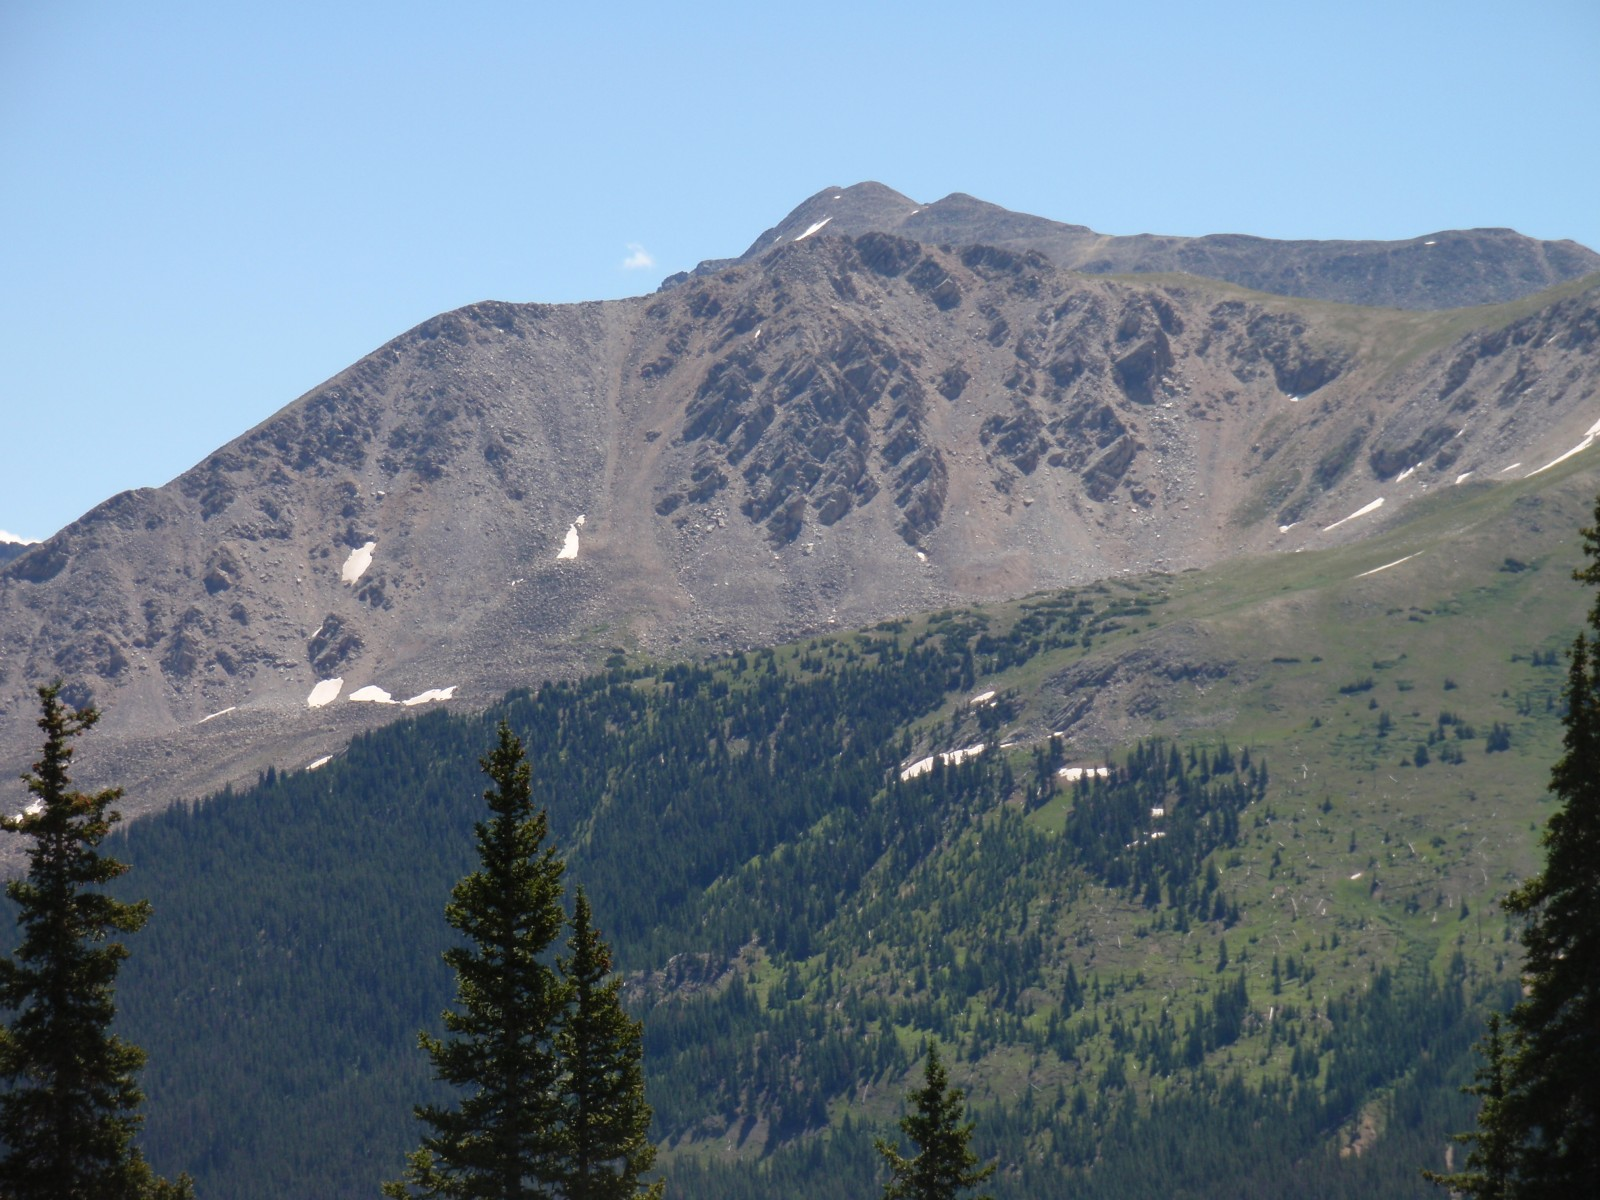 Unnamed 13,300 from the west, with 14er La Plata Peak behind